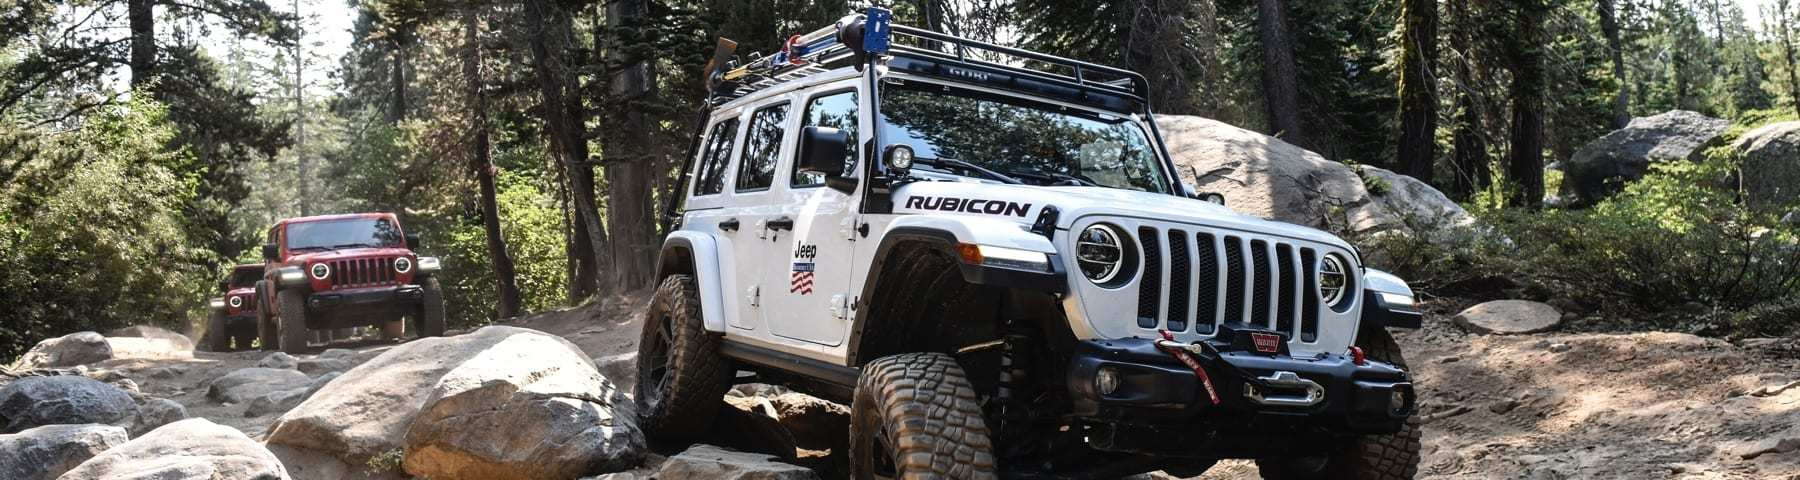 33 Gallery of 2019 Jeep Jamboree Prices with 2019 Jeep Jamboree